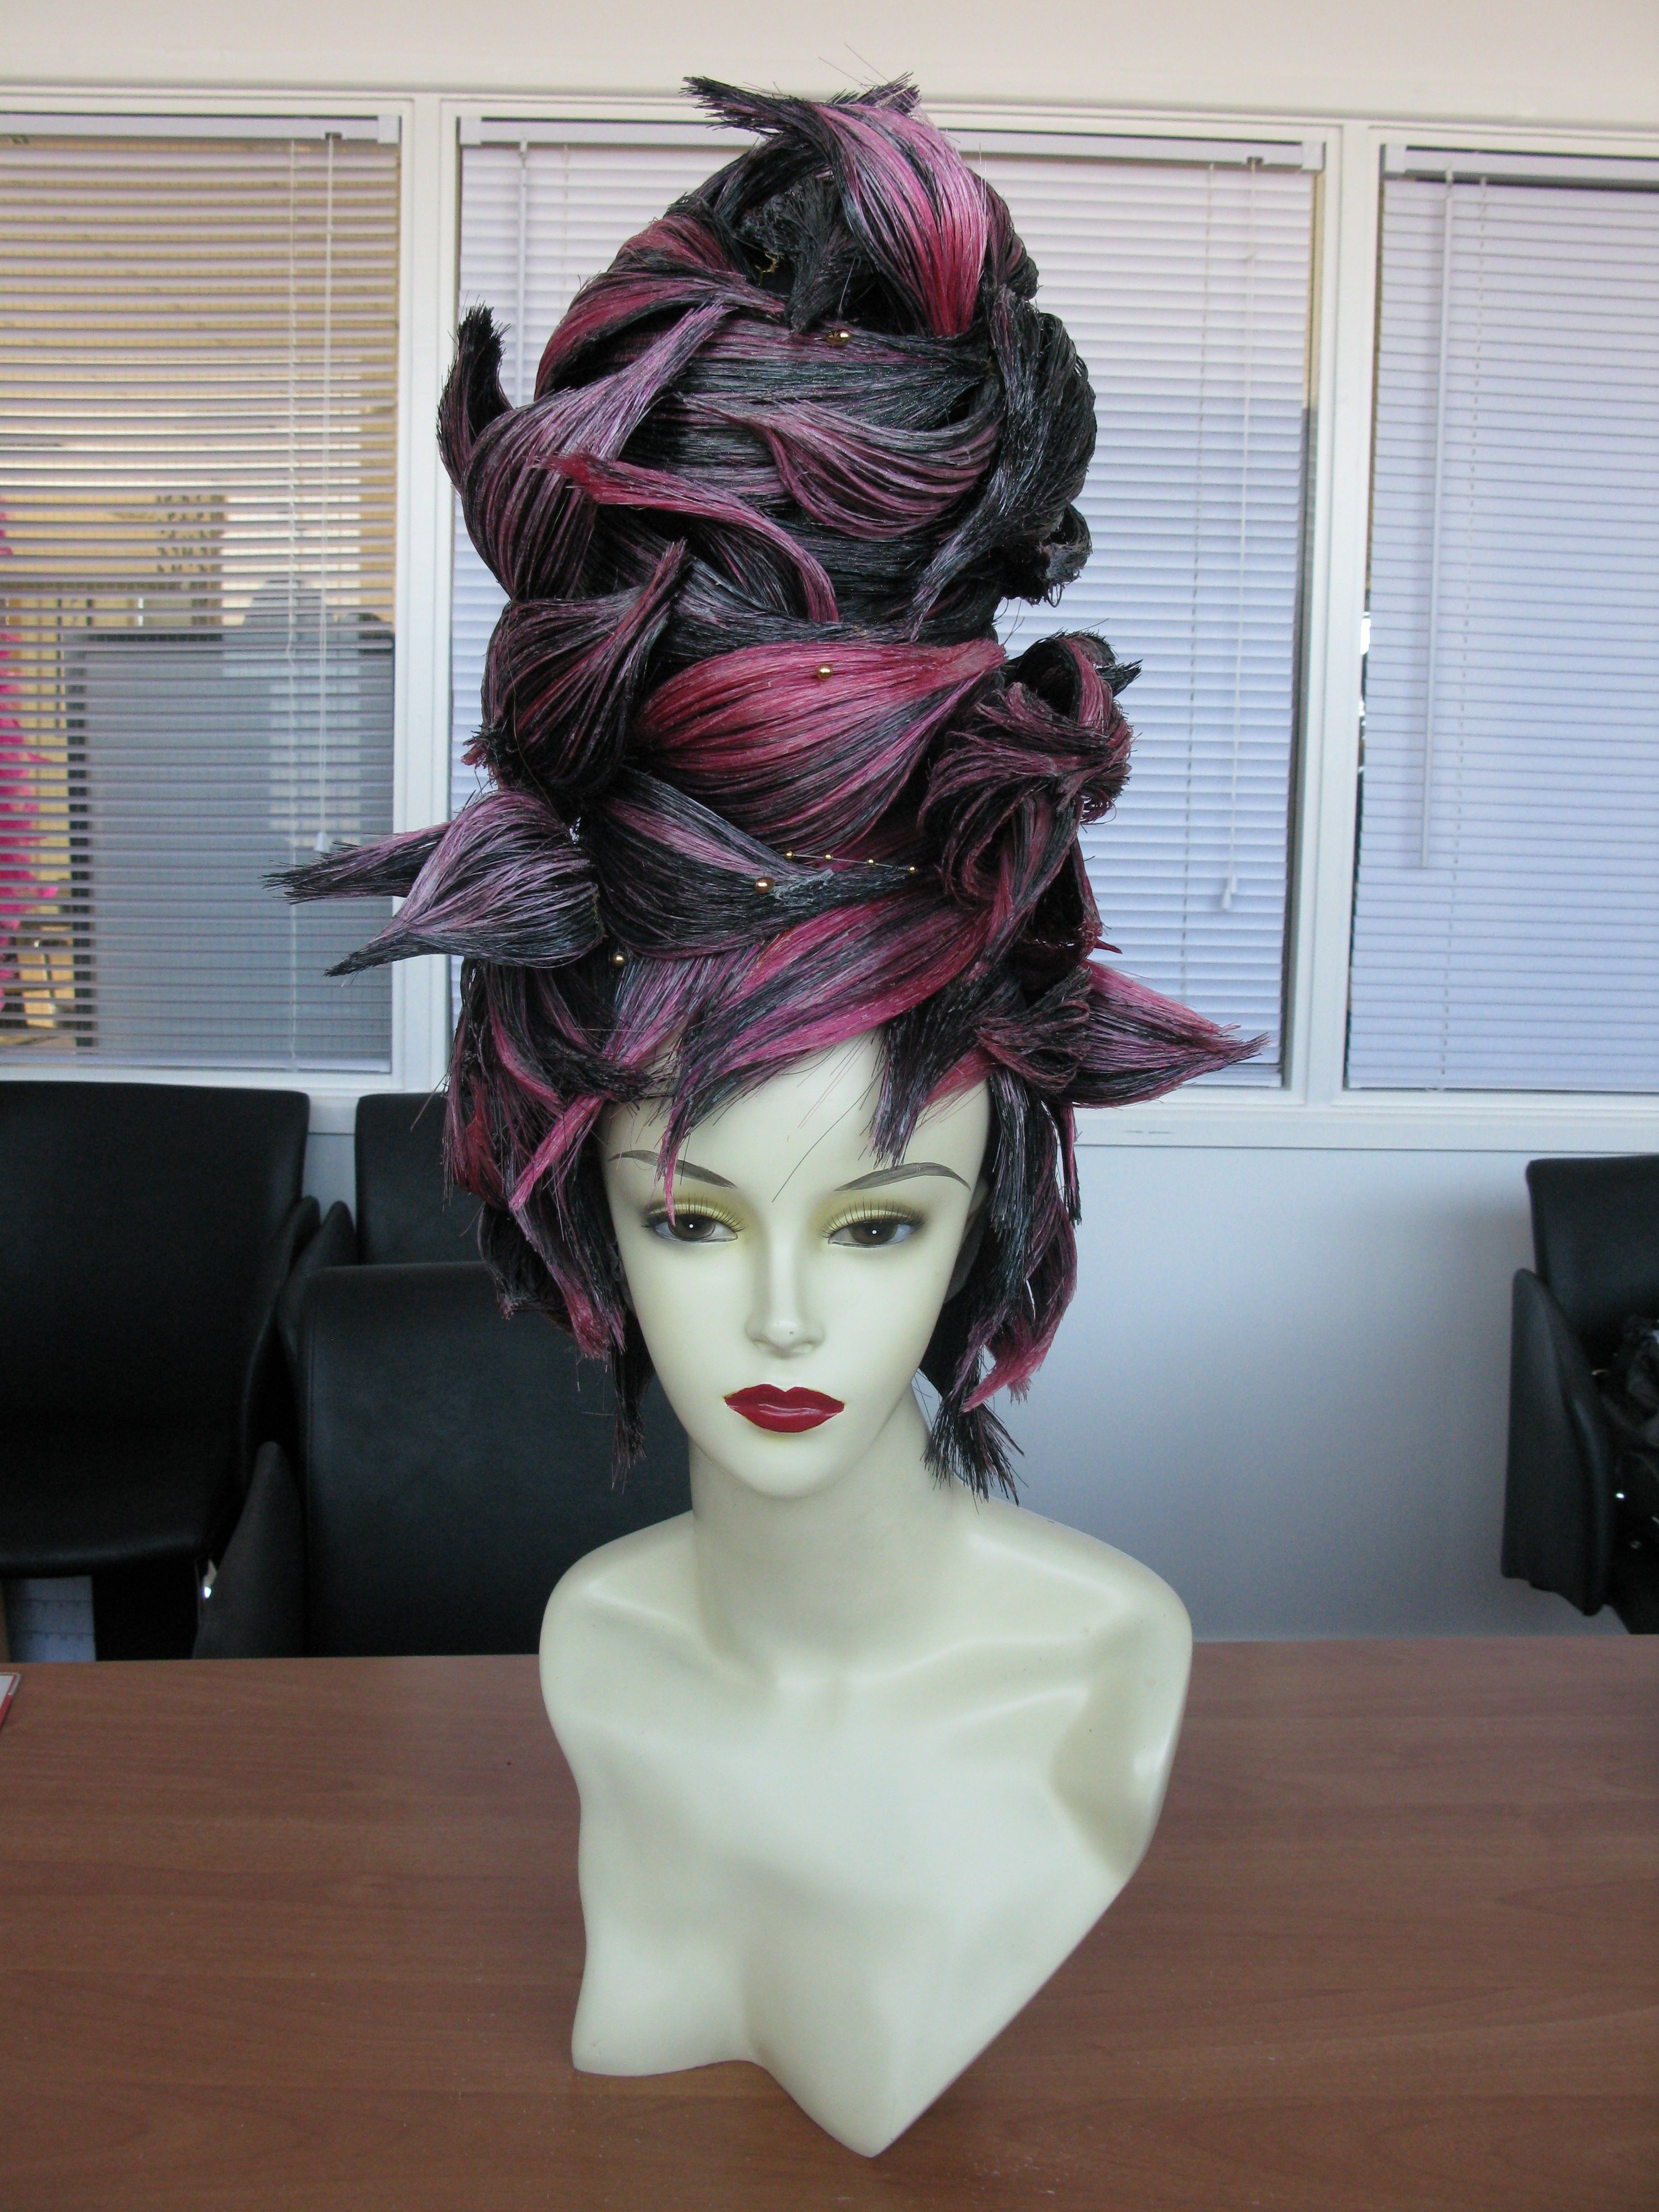 Mannequin Fantasy Hair Mohh Academy Www Mohh Ie Competition Hair Hair Styles Artistic Hair